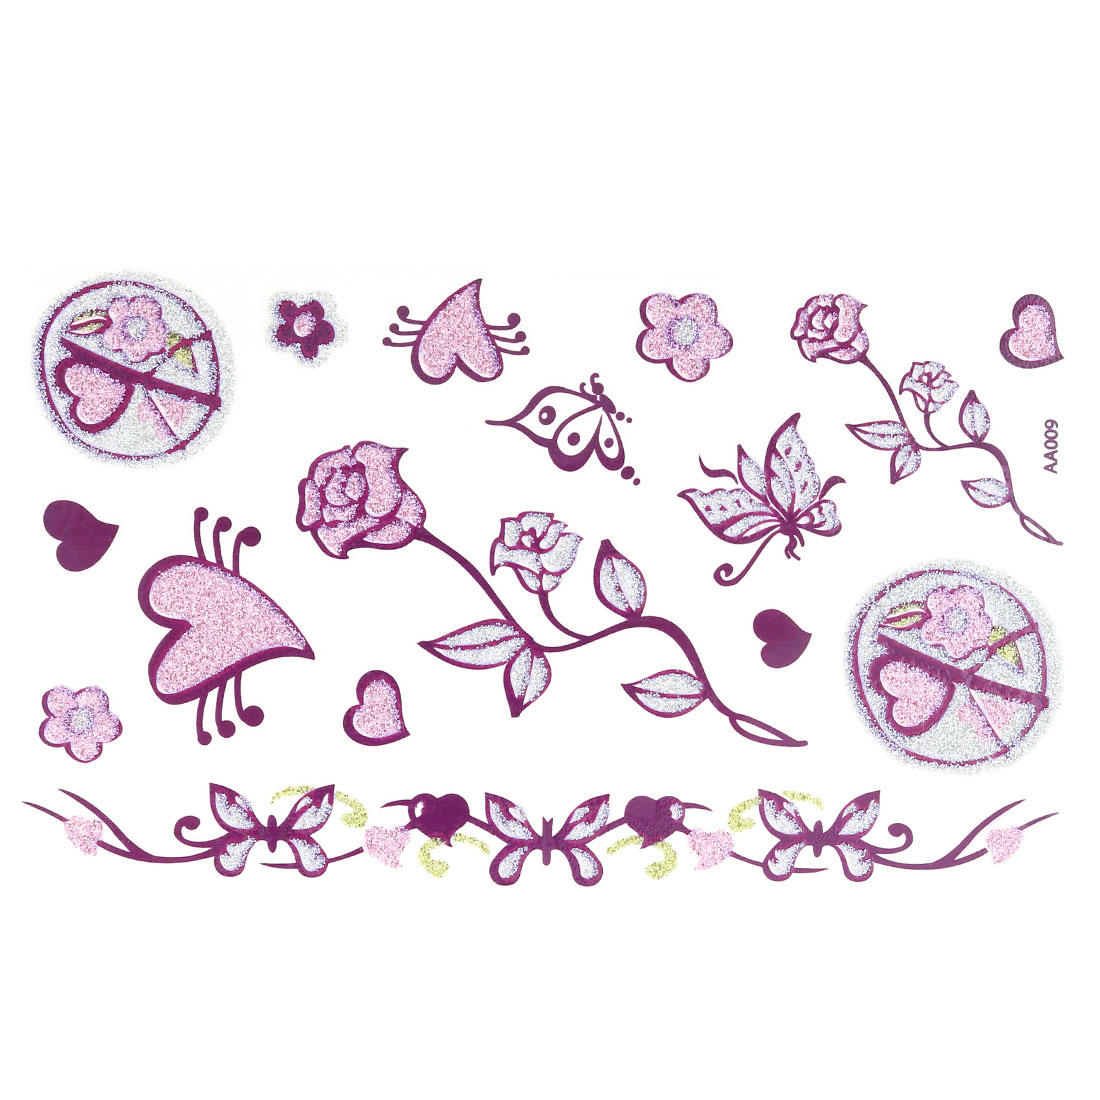 Lady Rose Butterfly Heart Pattern Removable Paper Sticker Decal Temporary Tattoo Sheet